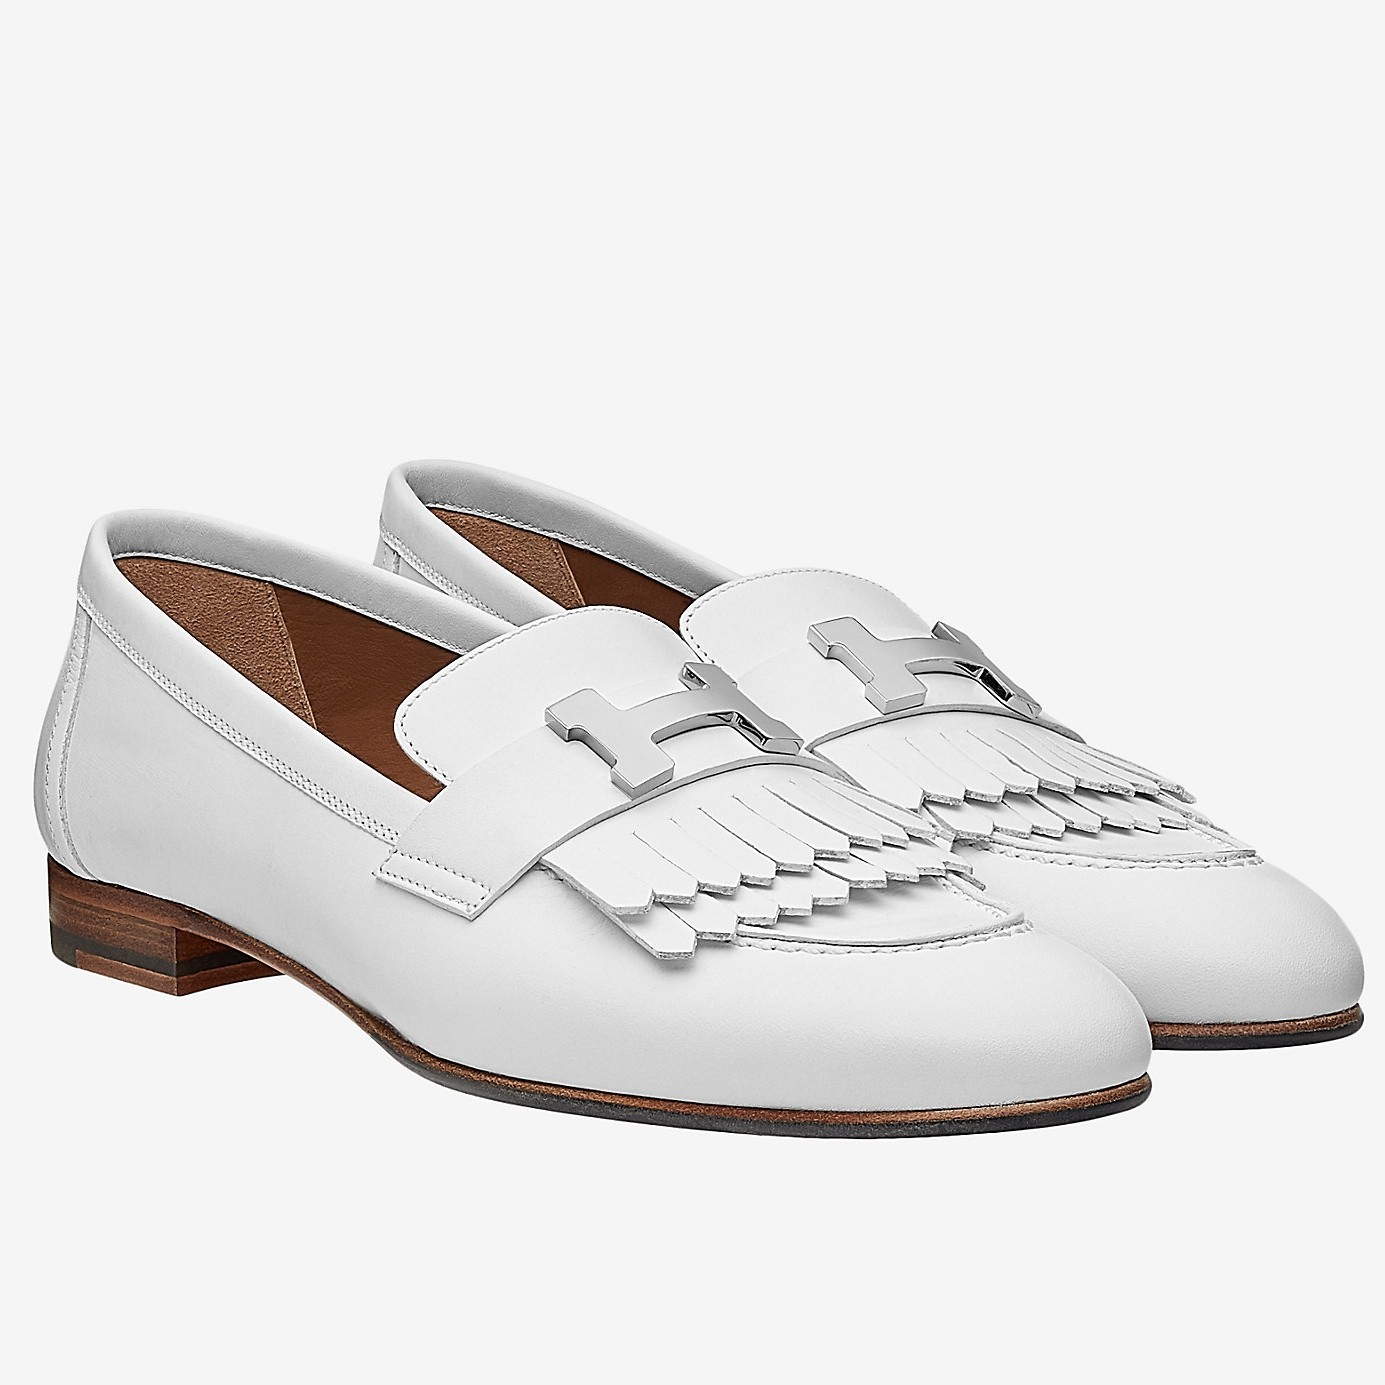 High End Hermes Royal Loafers In White Calfskin